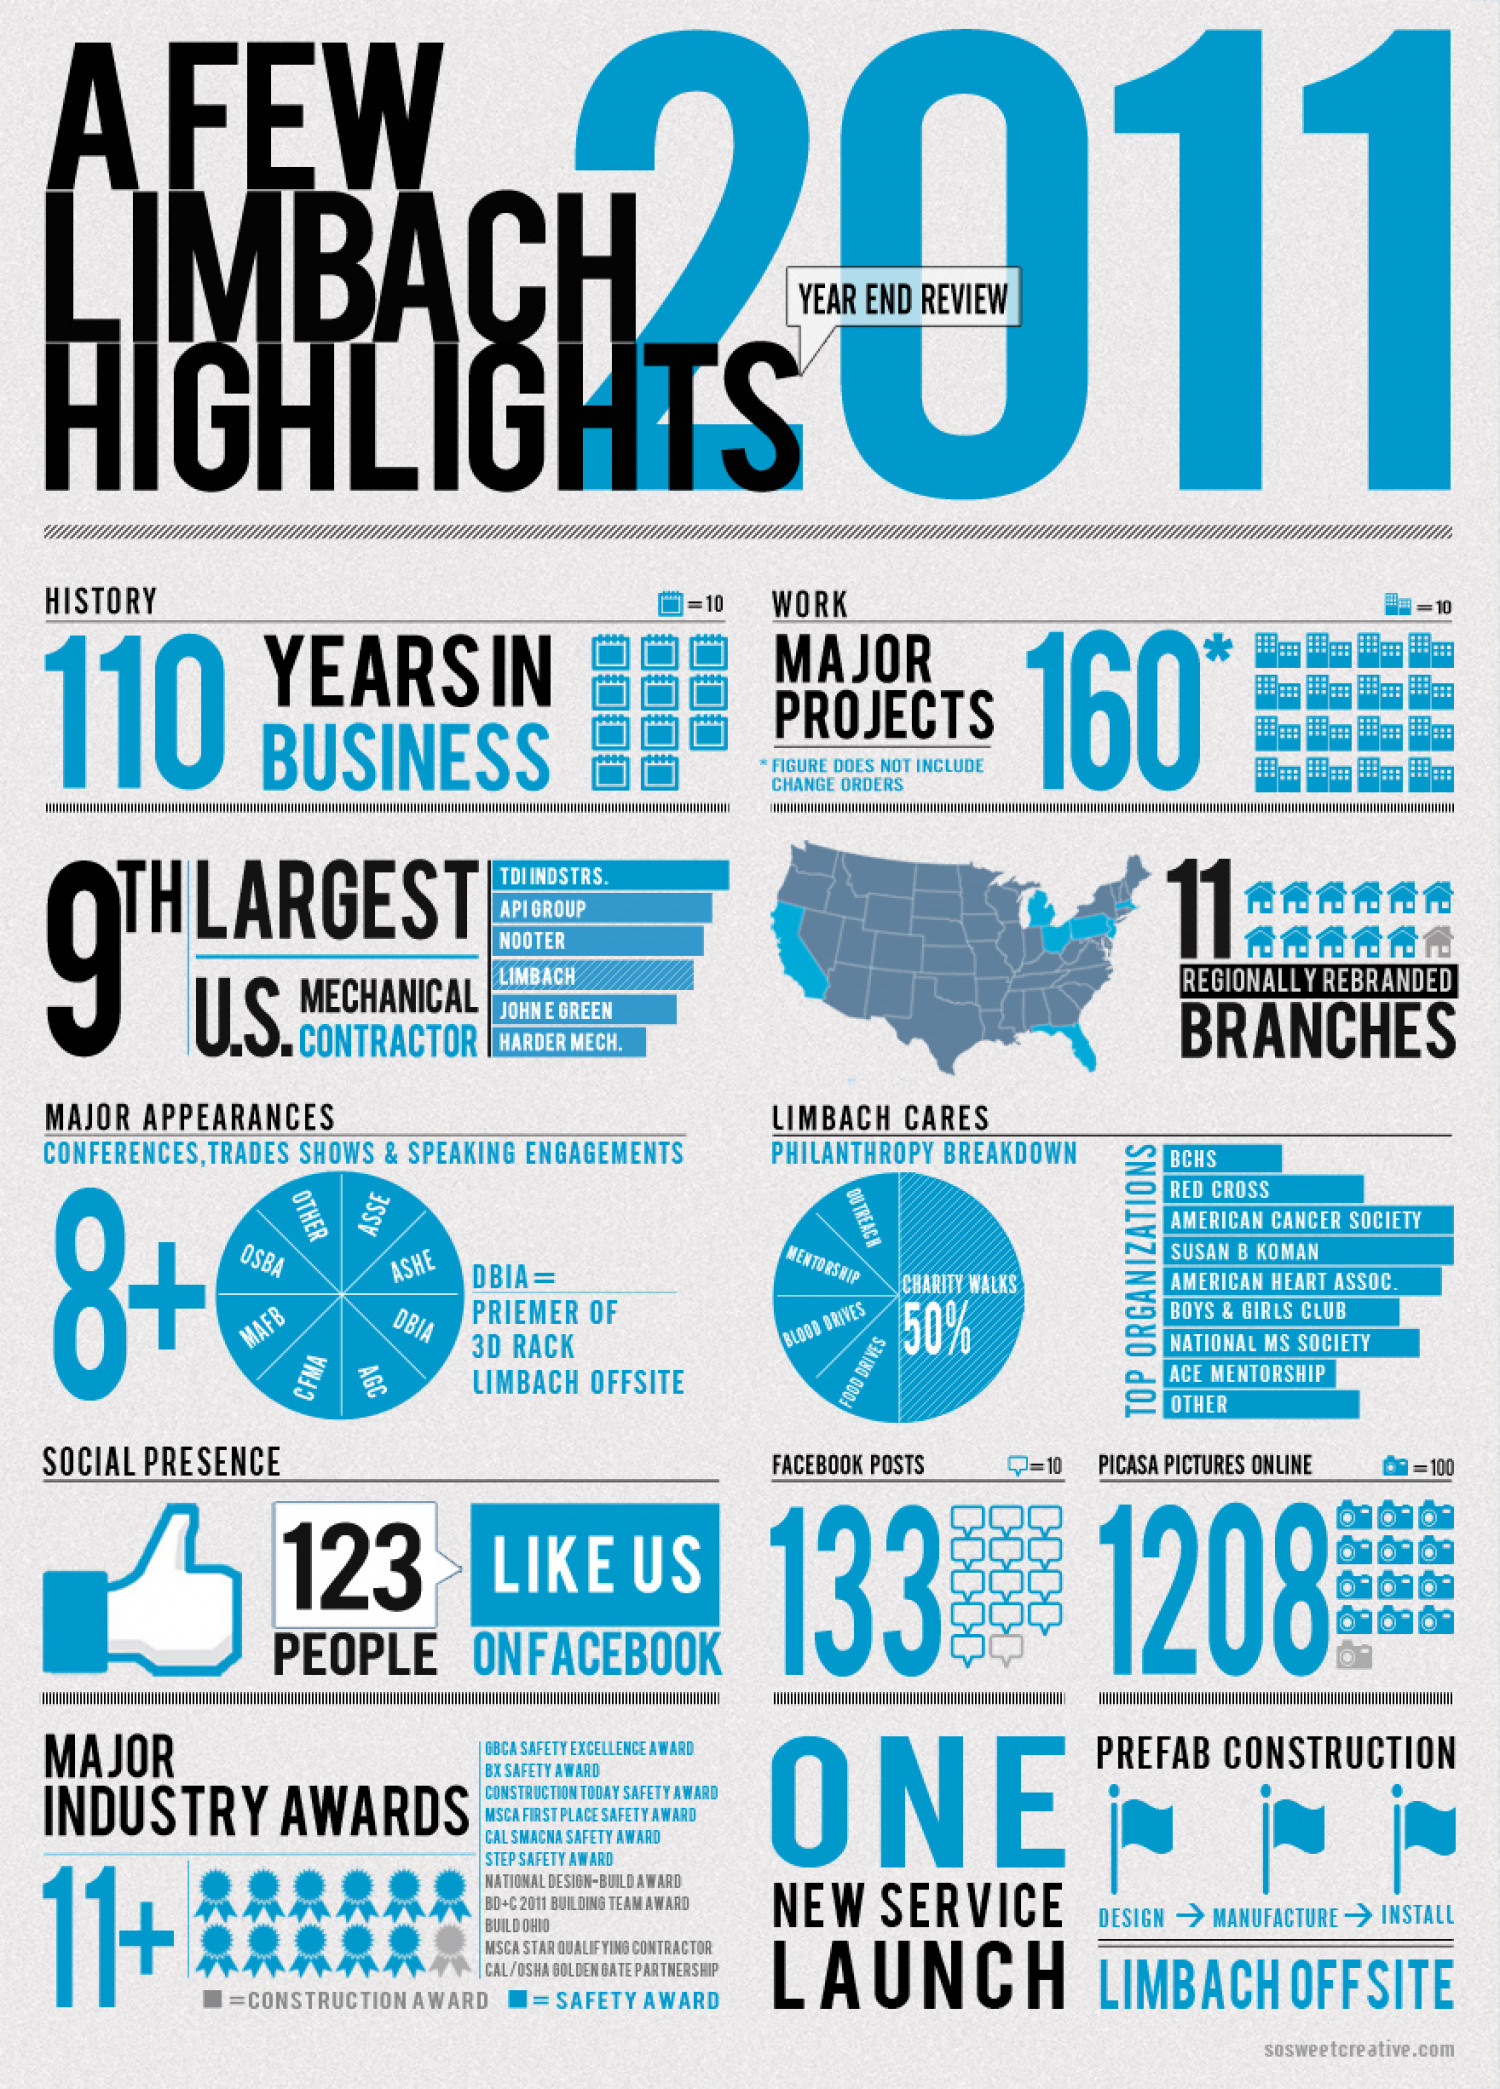 A Few Limbach Highlights Infographic